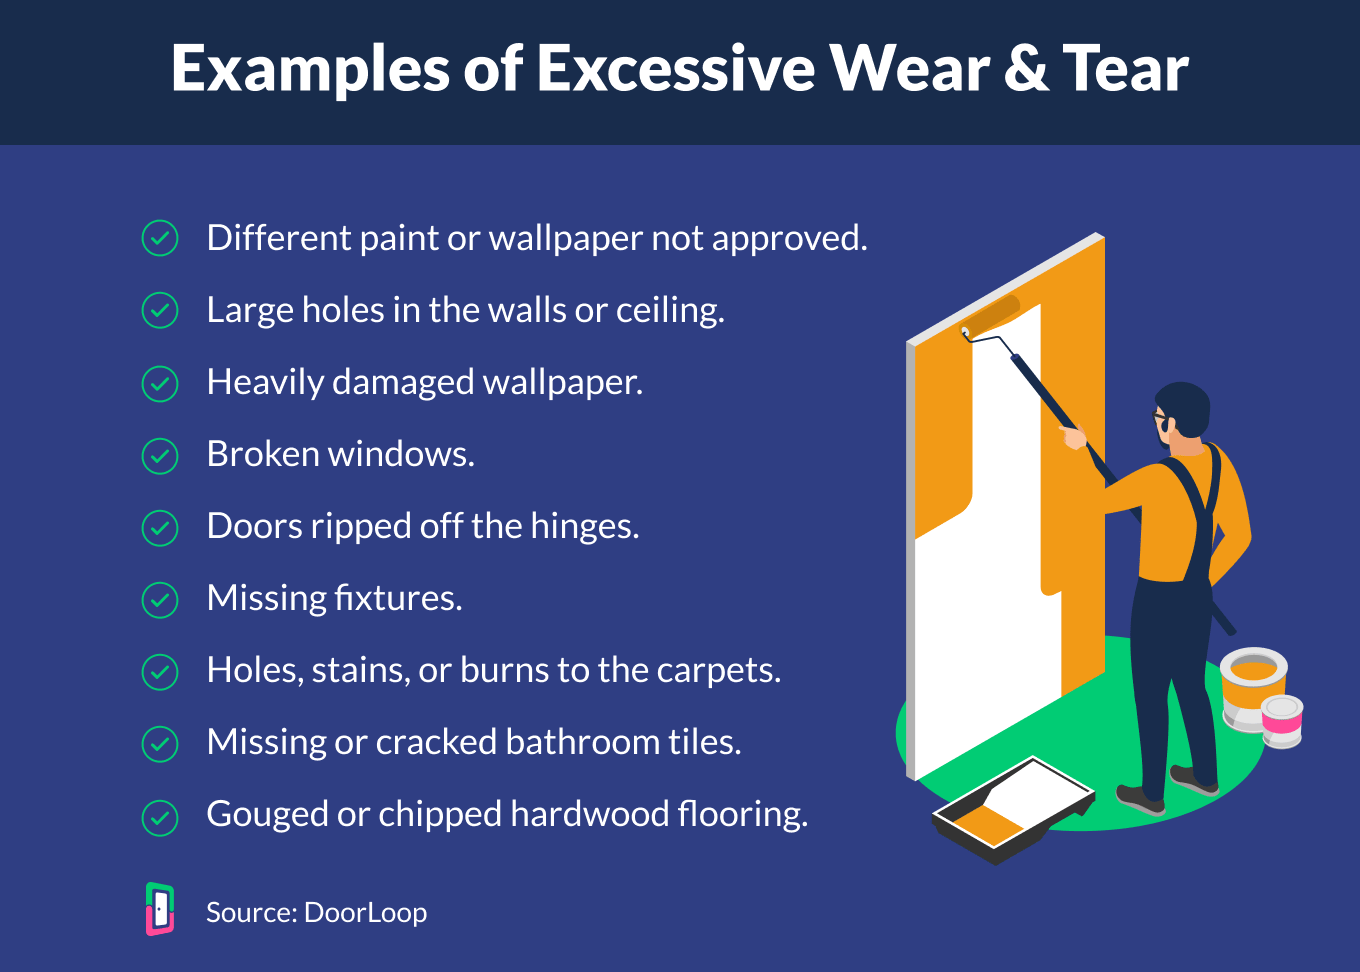 excessive wear and tear examples